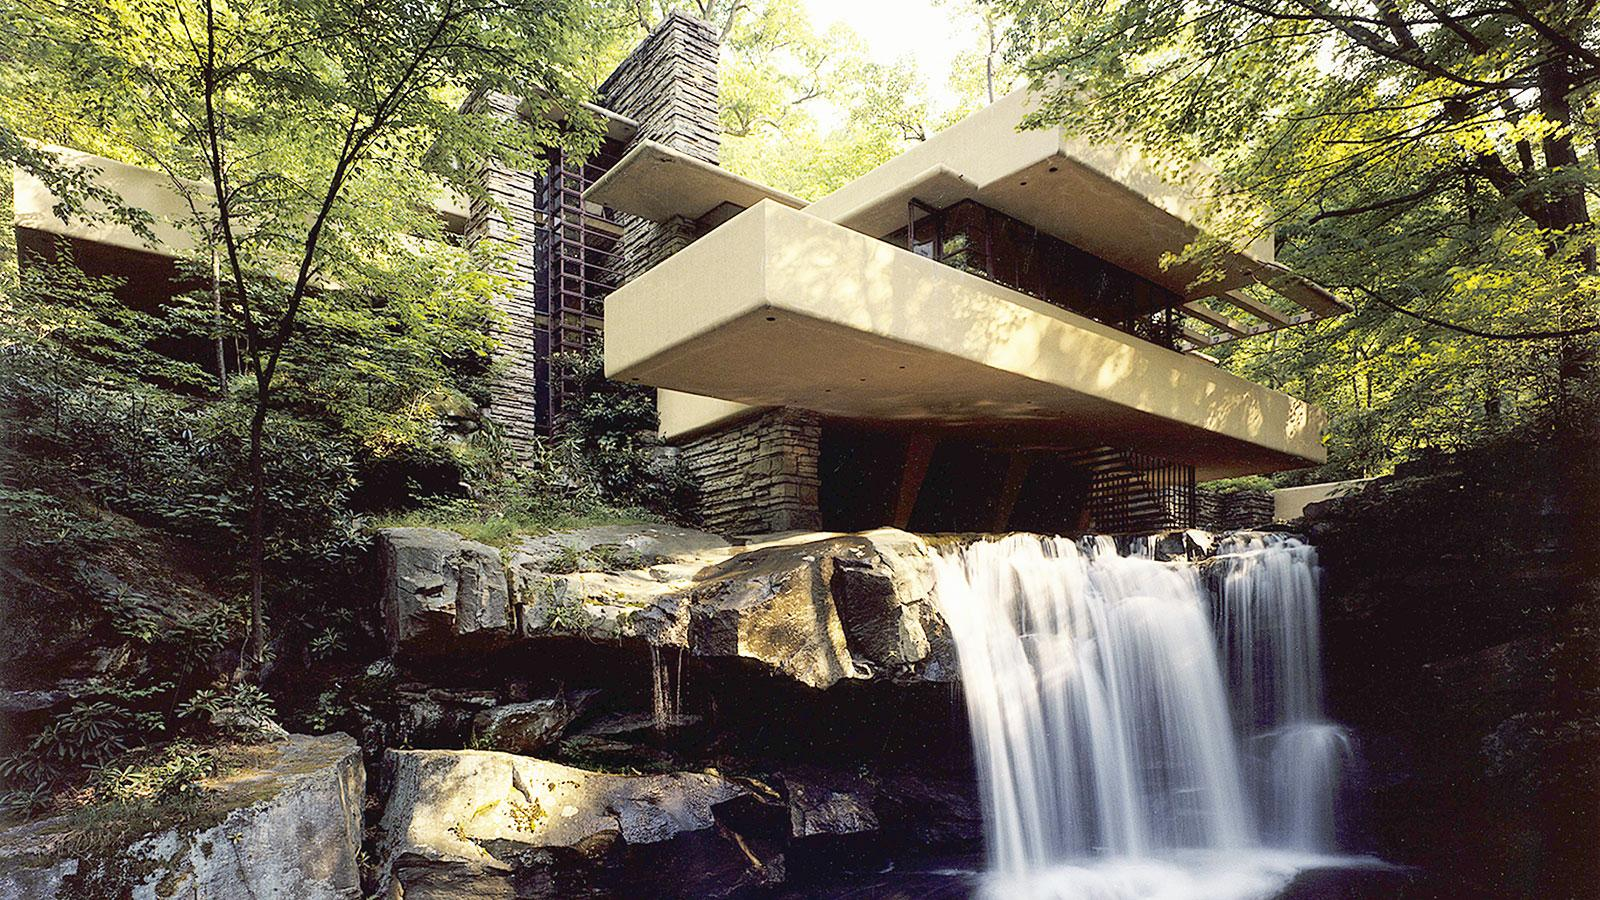 4 Fallingwater Mill Run Pennsylvania Frank Lloyd Wright 1936 38